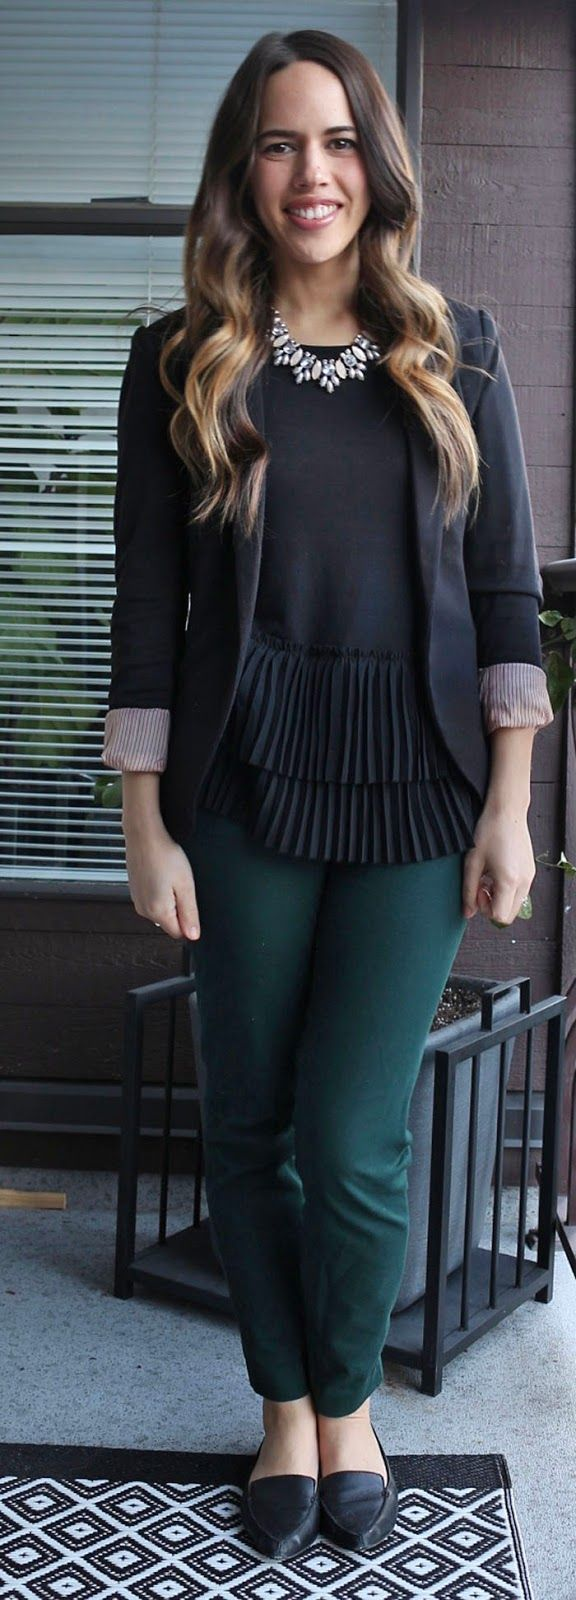 Jules in Flats - Banana Republic Tiered Ruffled Blouse, H&M Blazer, Old Navy Pixie Pants